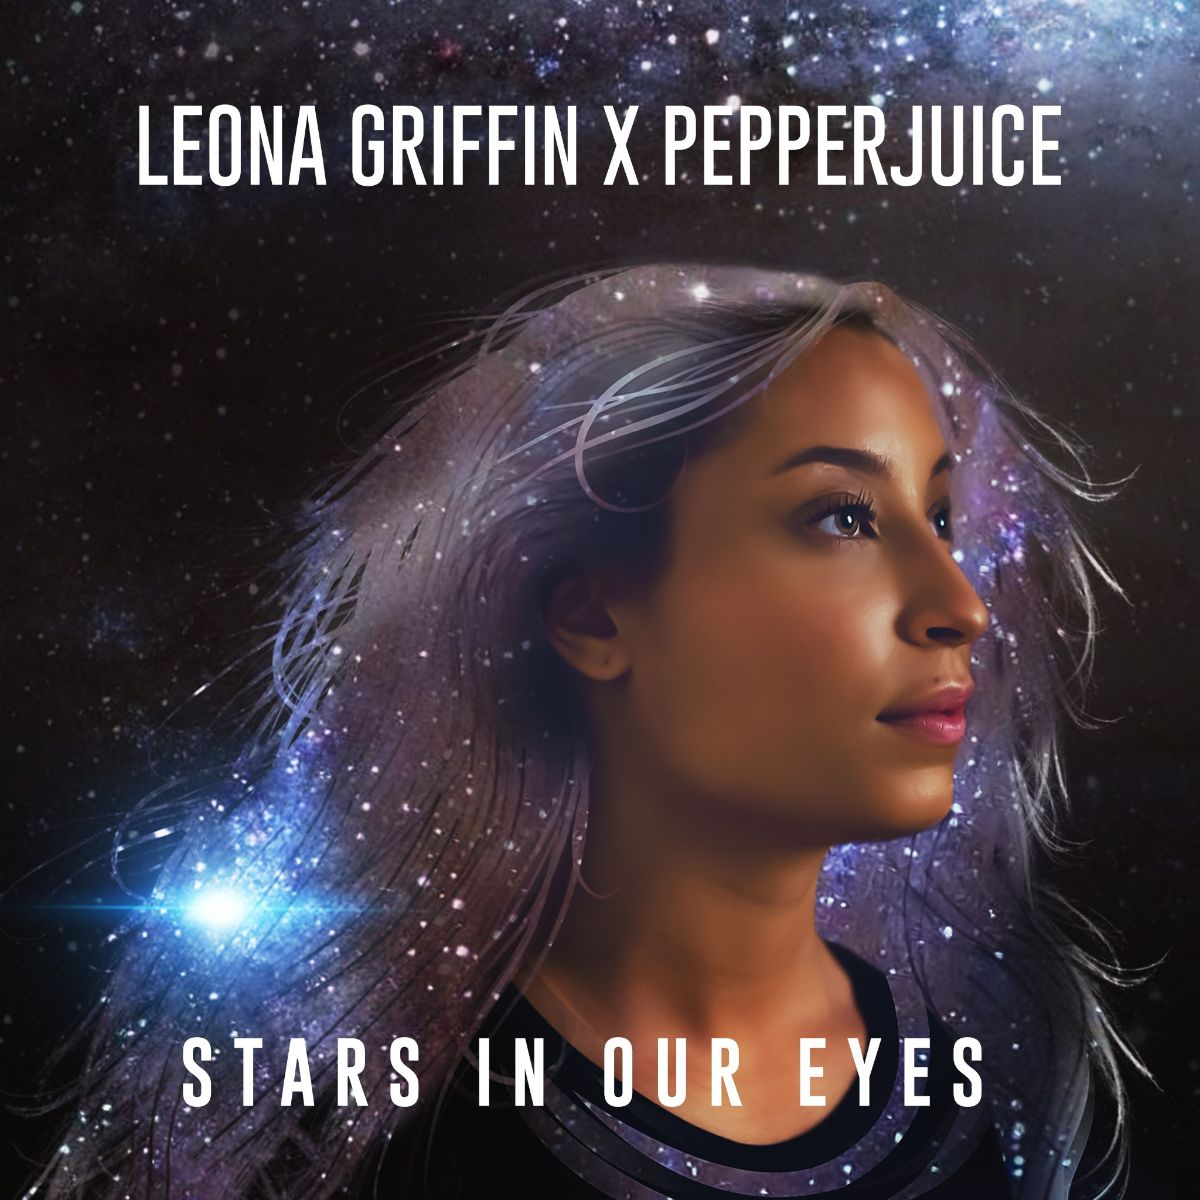 Leona Griffin & Perpperjuice –STARS IN OUR EYES